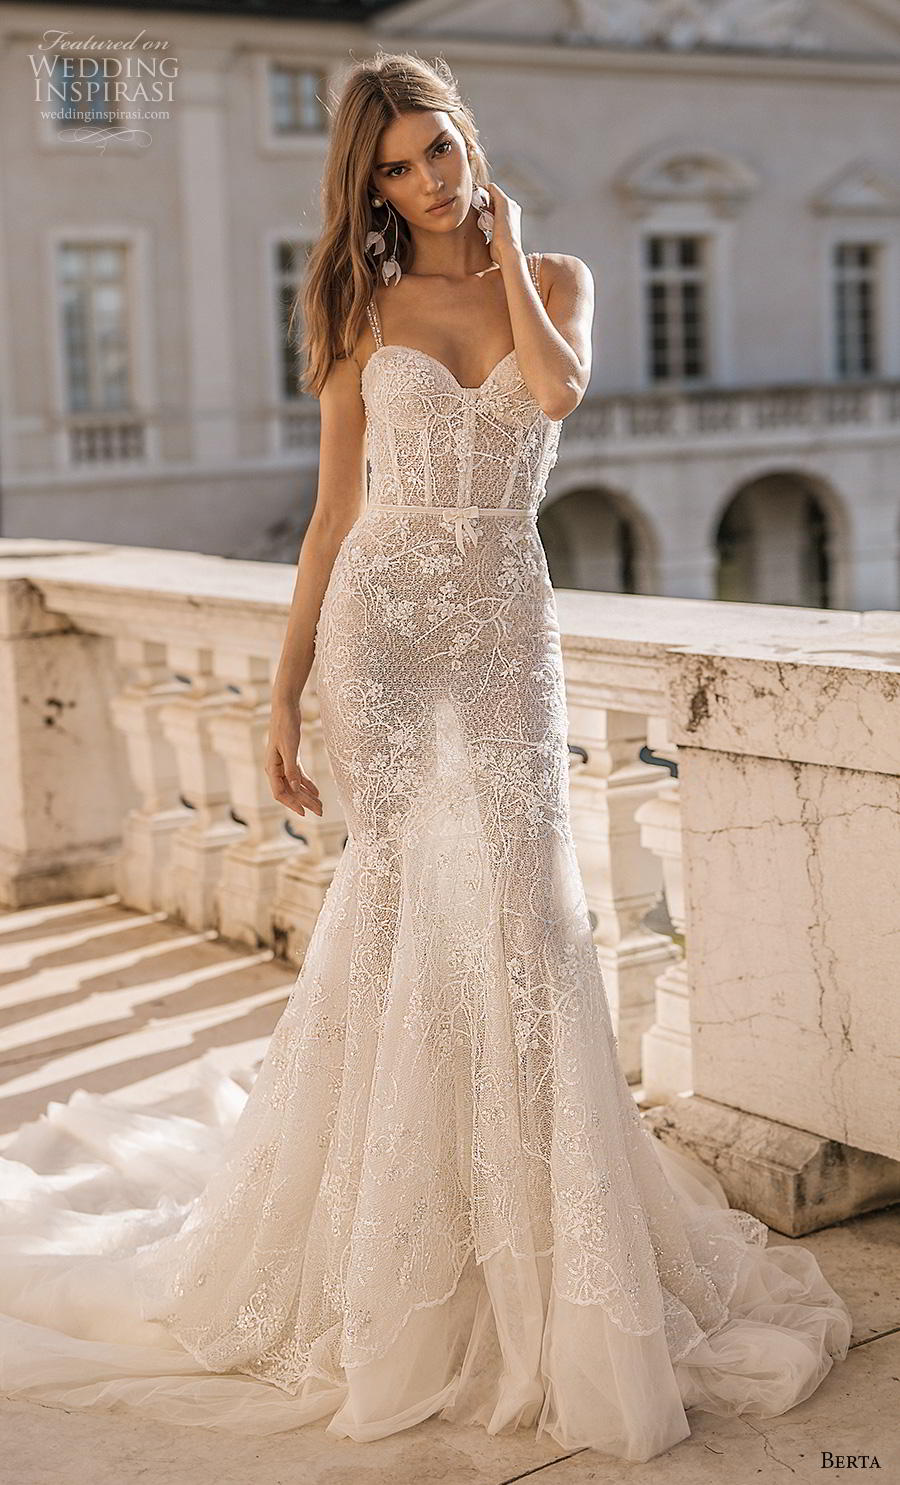 Berta Priv 233 E 2019 Wedding Dresses Wedding Inspirasi